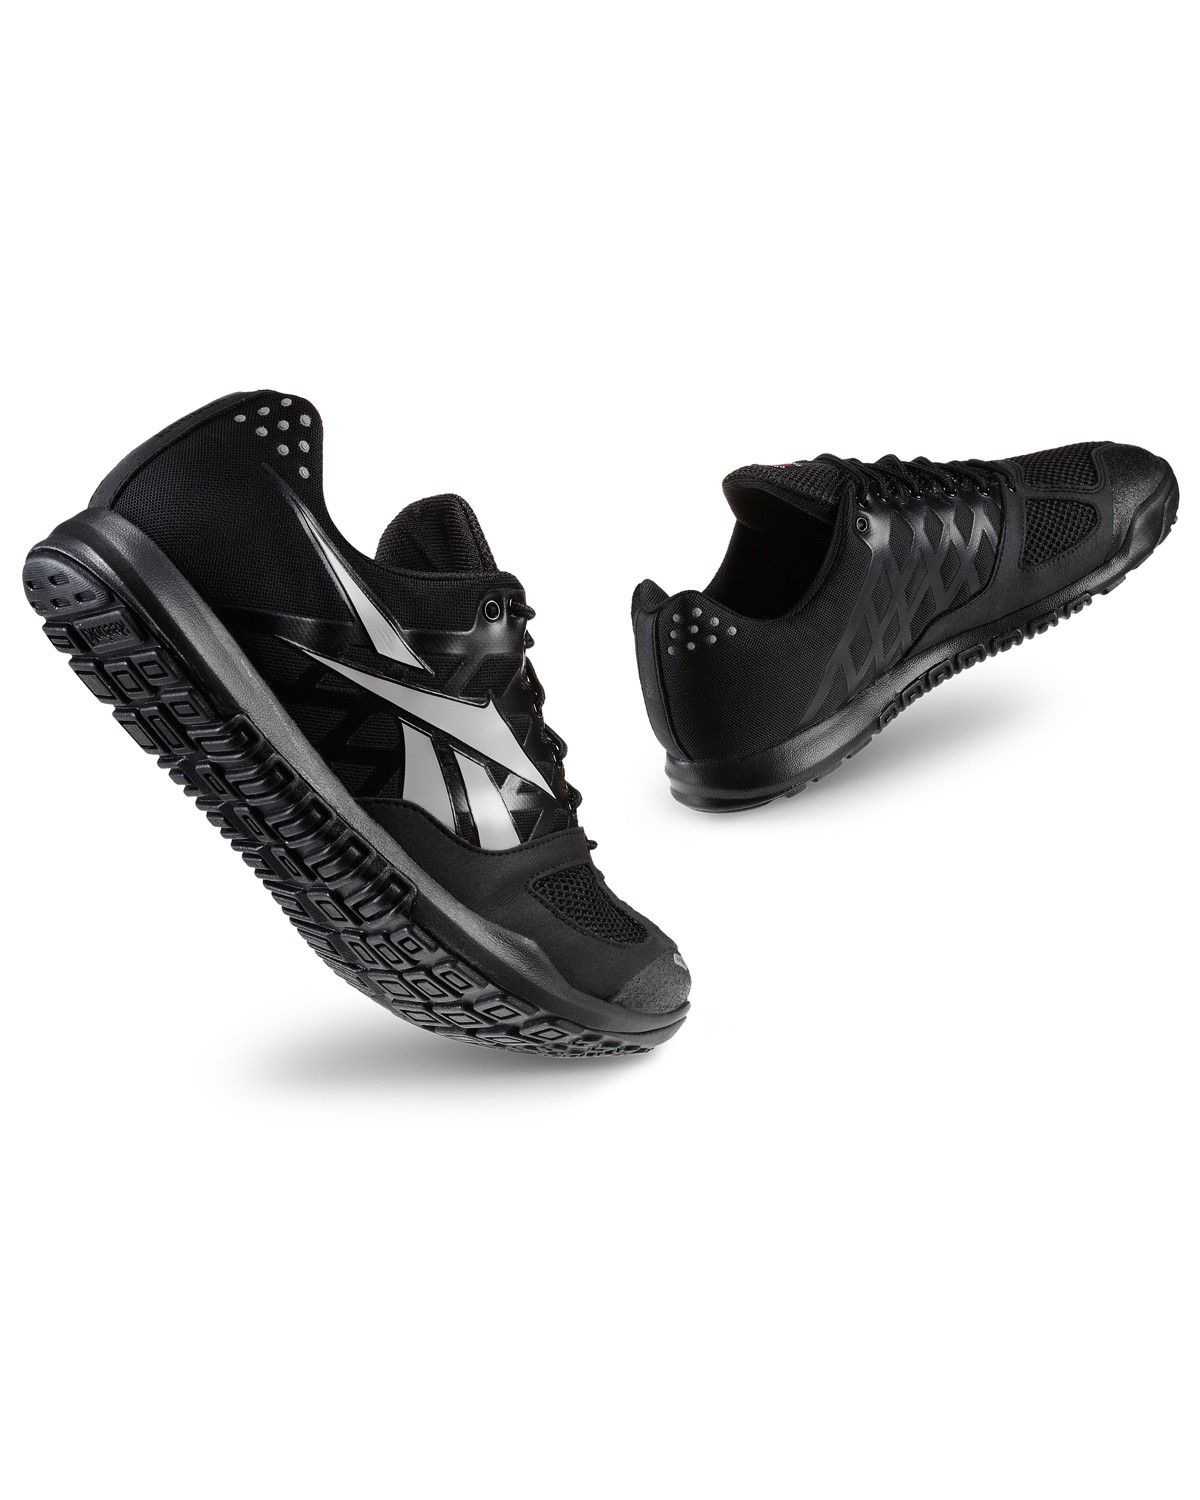 CrossFit HQ Store- Men's Reebok Nano 2.0 - Men Buy Authentic CrossFit T-Shirts, CrossFit Gear, Accessories and Clothing